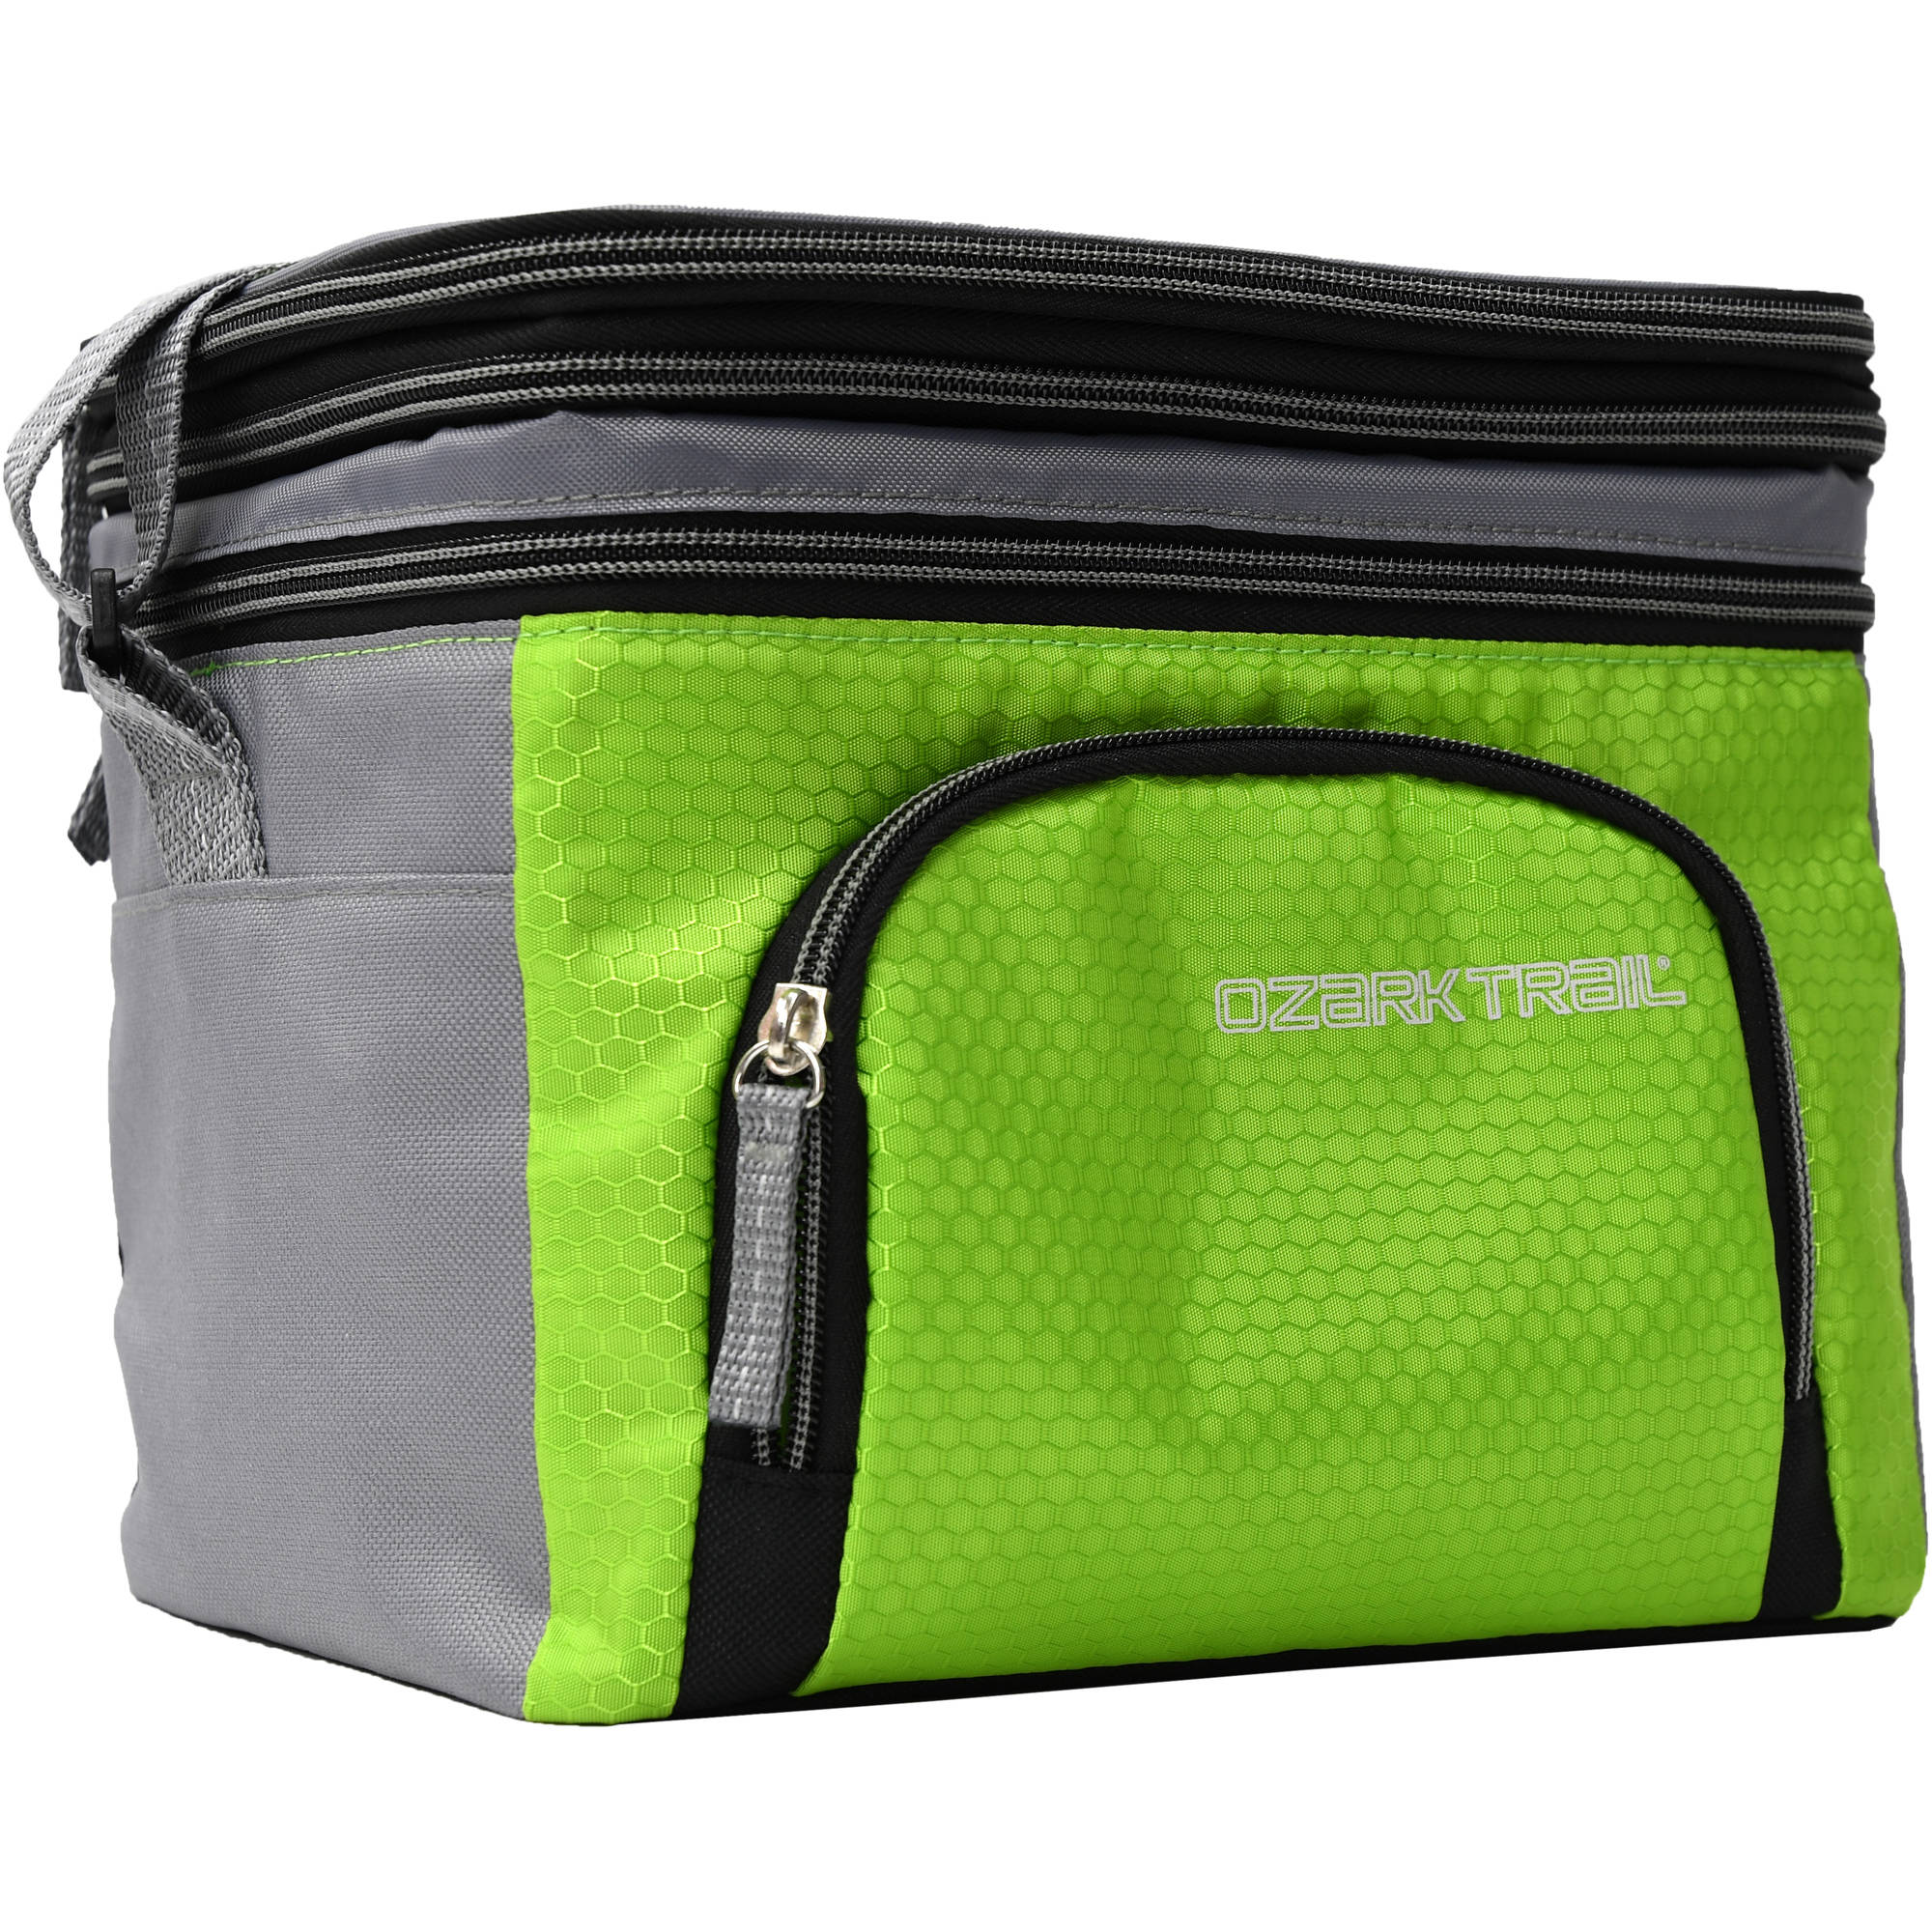 Ozark Trail Cooler Bag, Green